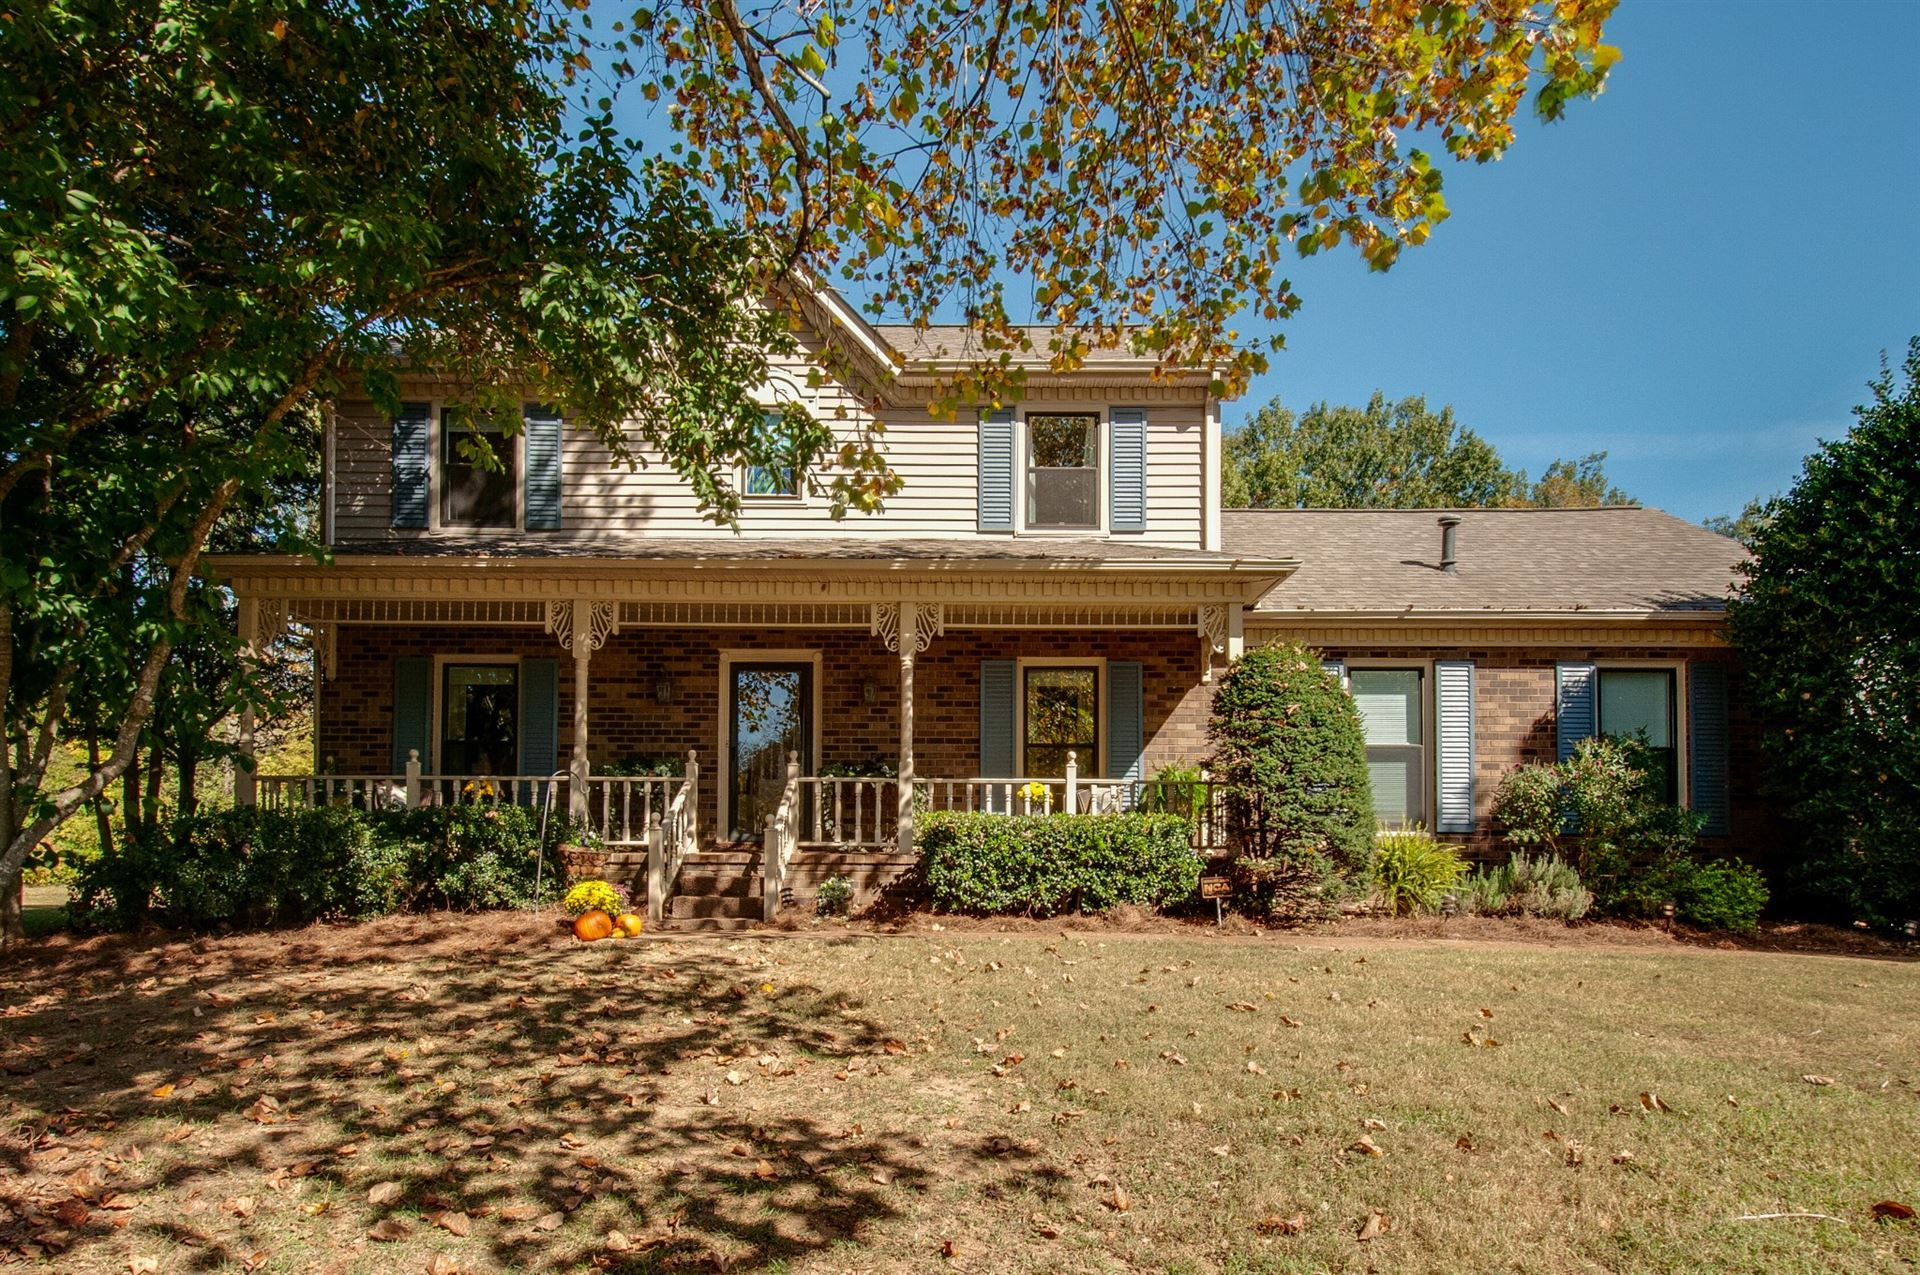 7632 Staffordshire Dr, Nashville, TN 37221 - MLS#: 2208430